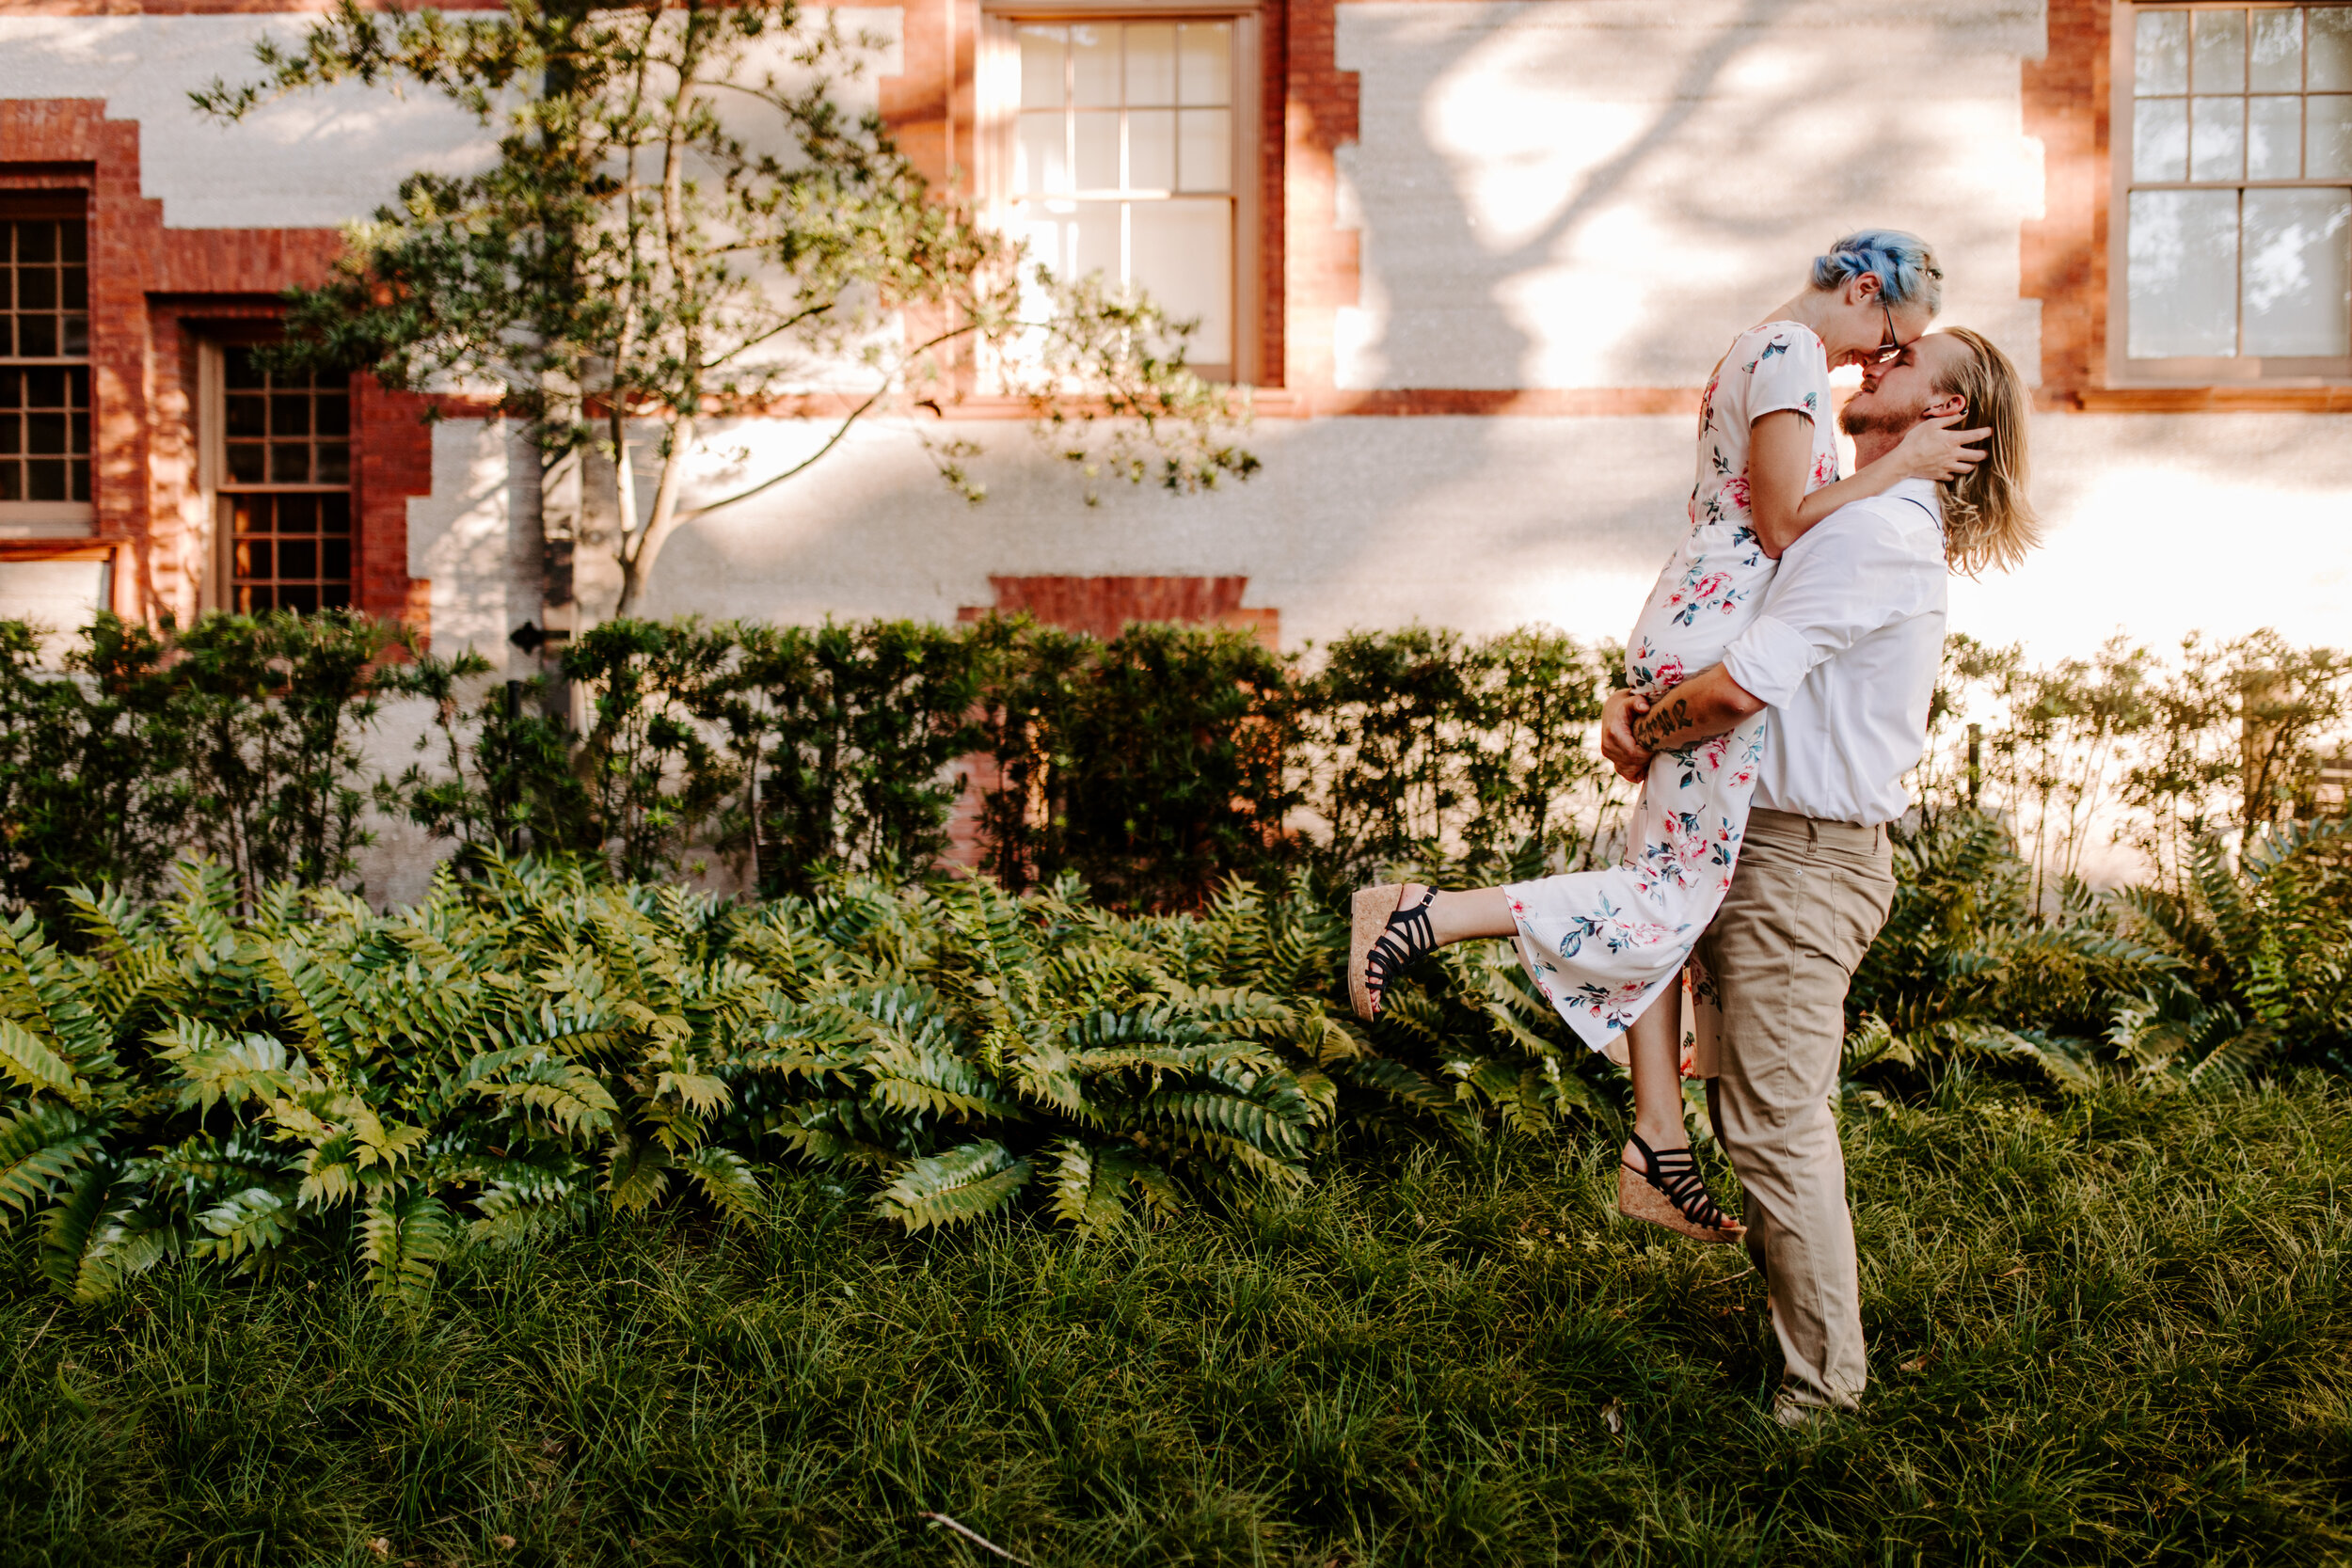 Ashalei_+_Clay_-_Native_Expressions_-_Downtown_St_Augustine_-_Engagement_Session-121.jpg